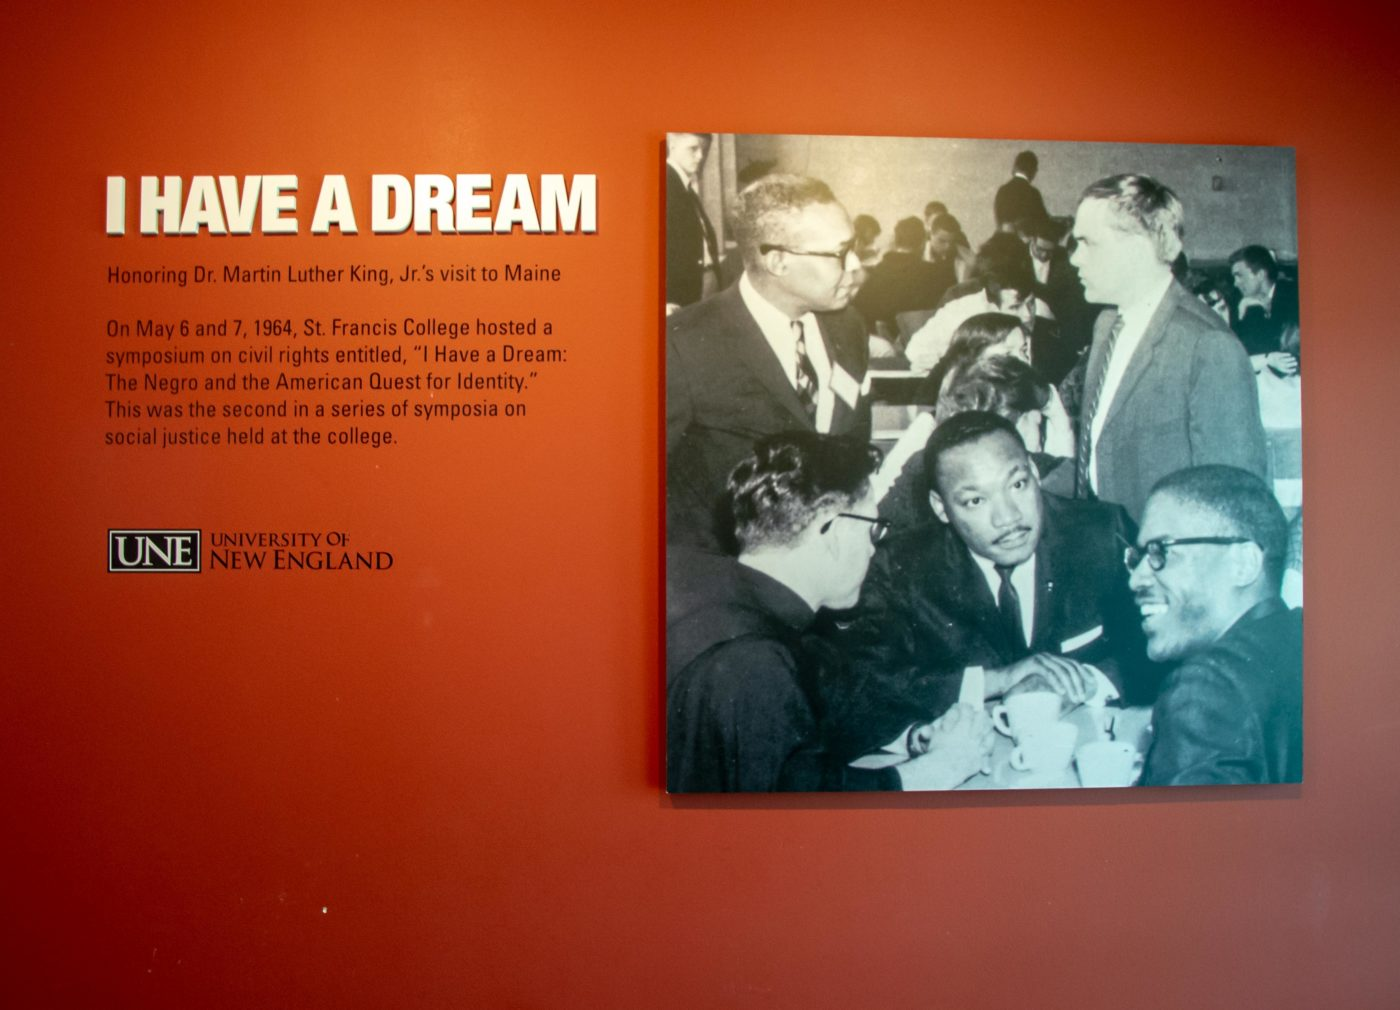 detail of Dr. Martin Luther King Jr. exhibit wall